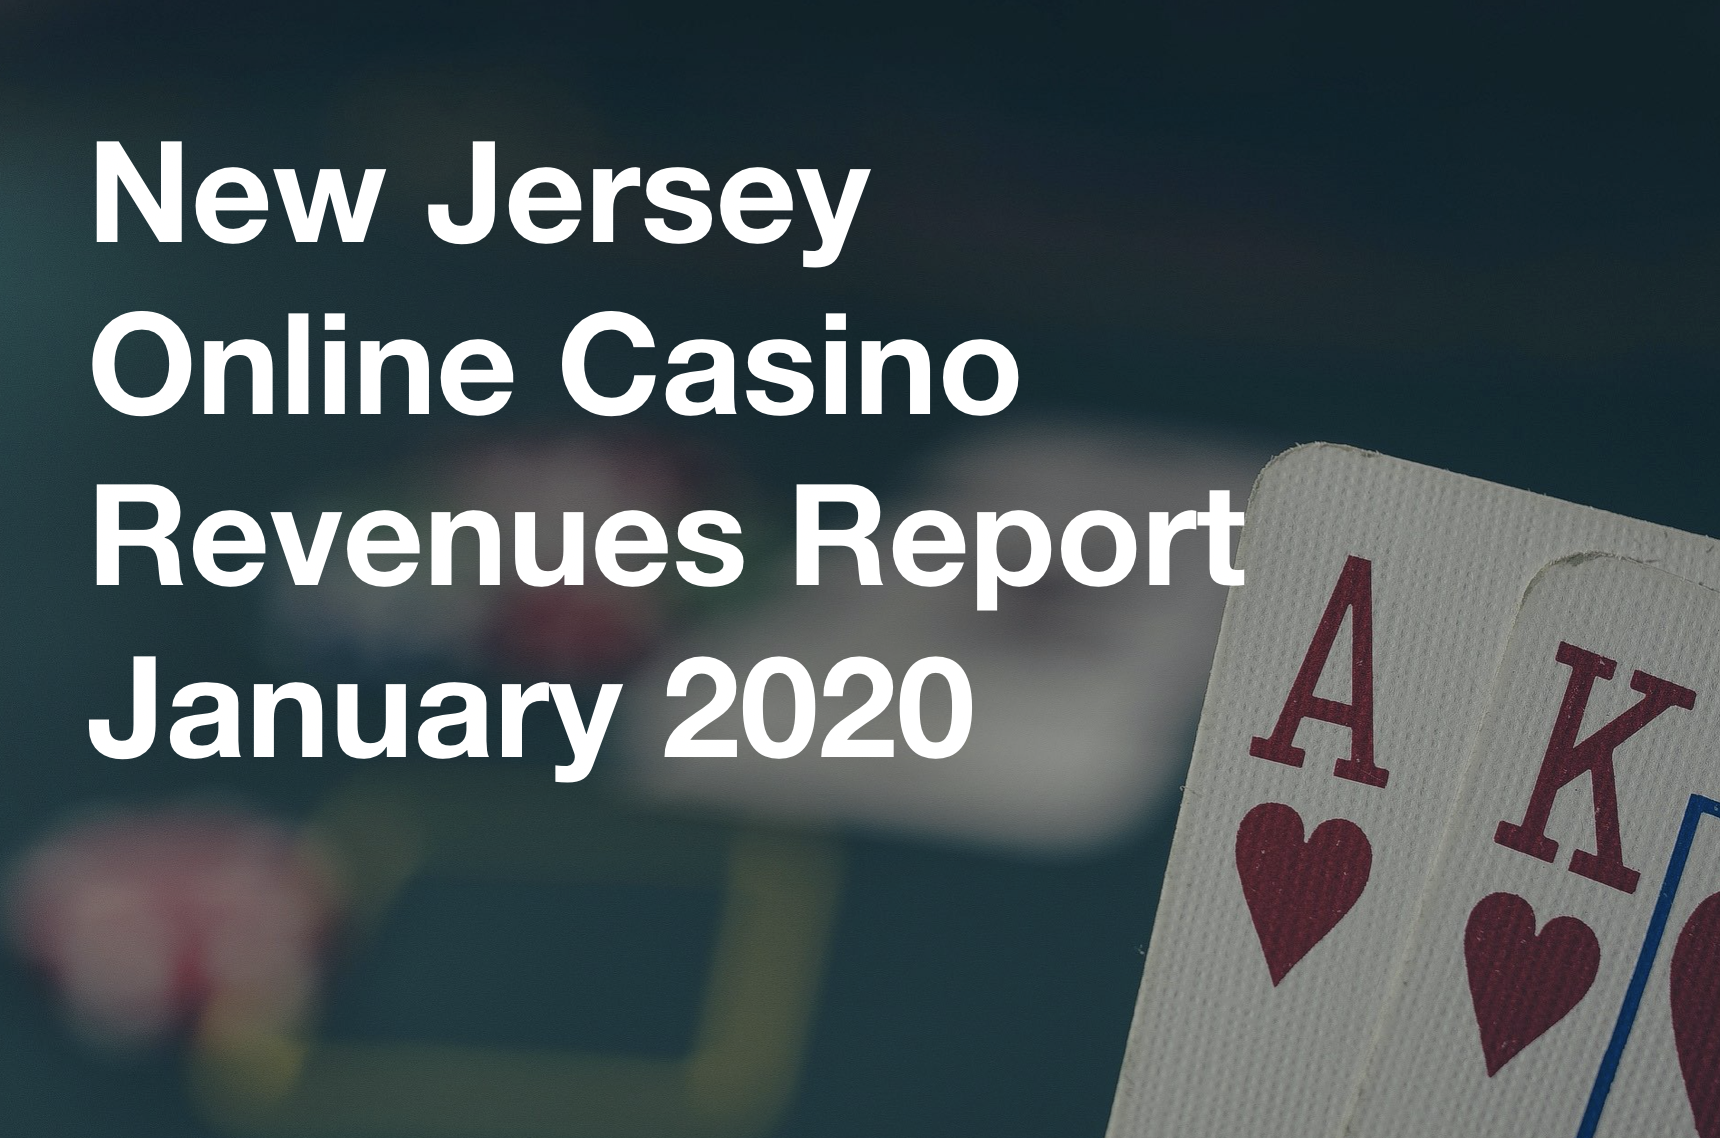 NJ Online Casino Revenue Report January 2020